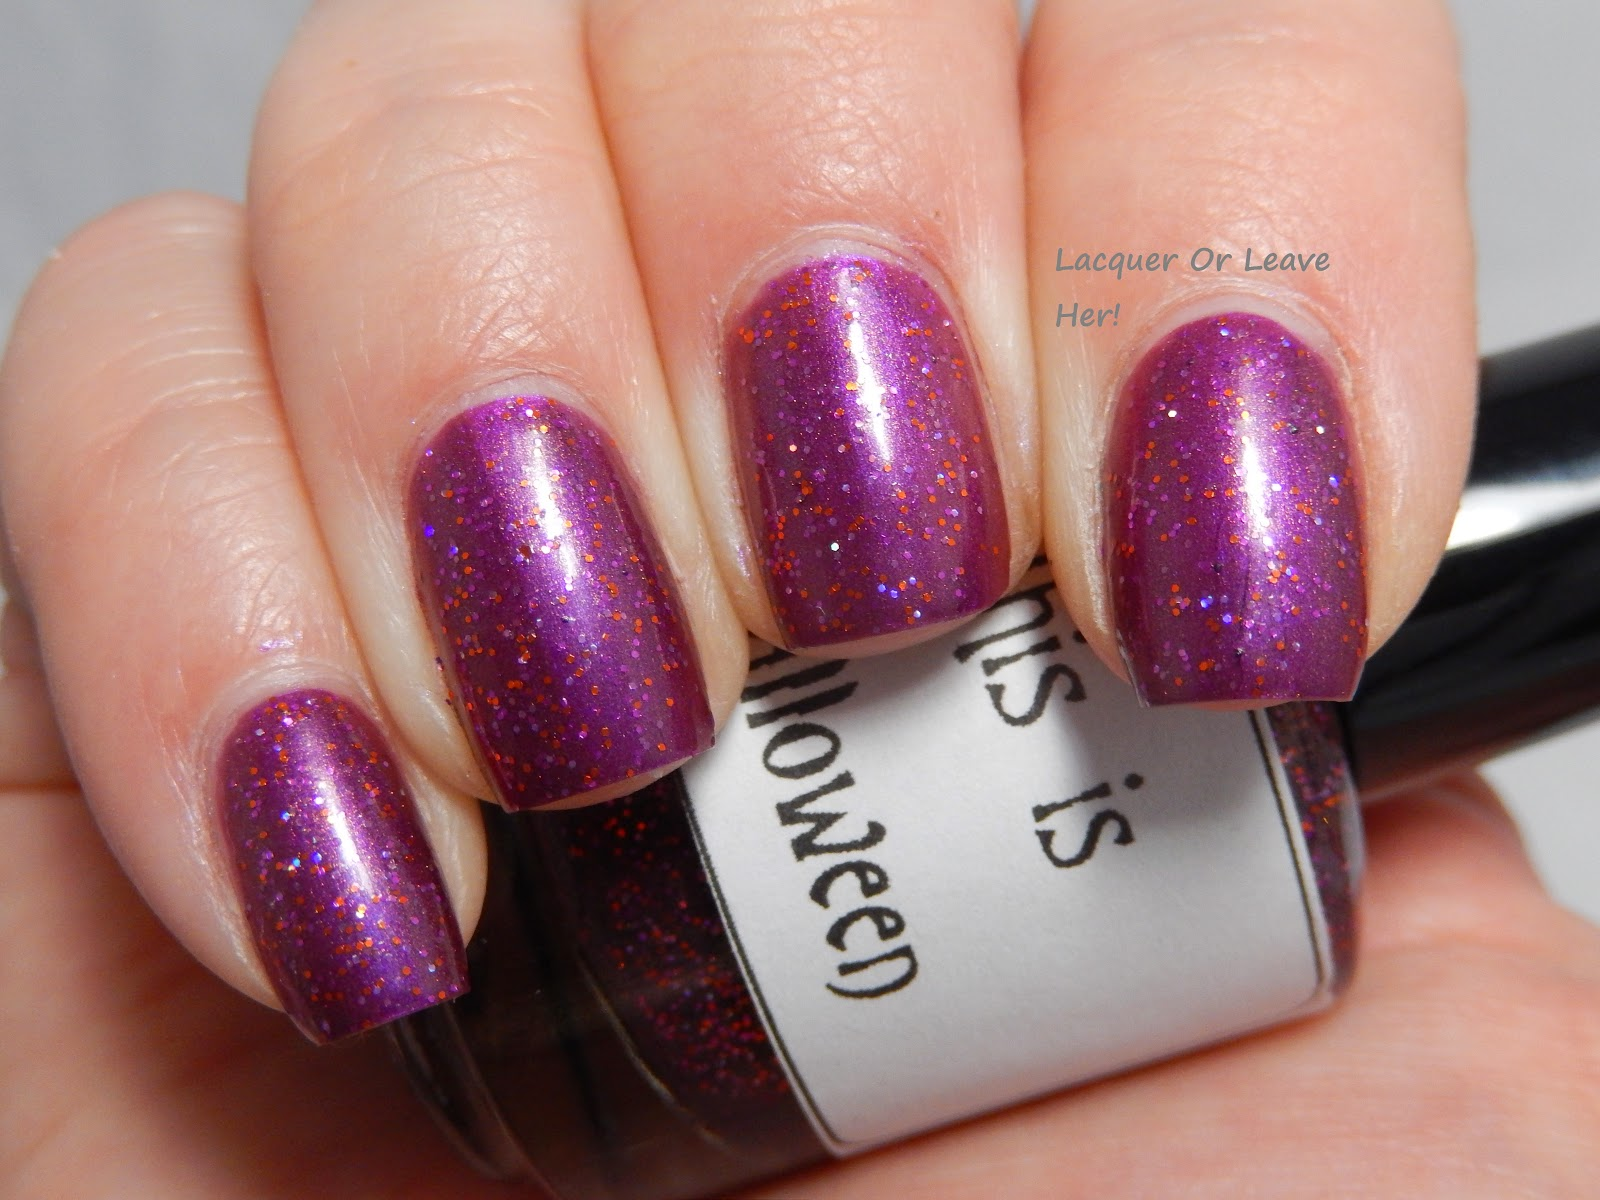 LynBDesigns This Is Halloween over Orly Beautiful Disaster